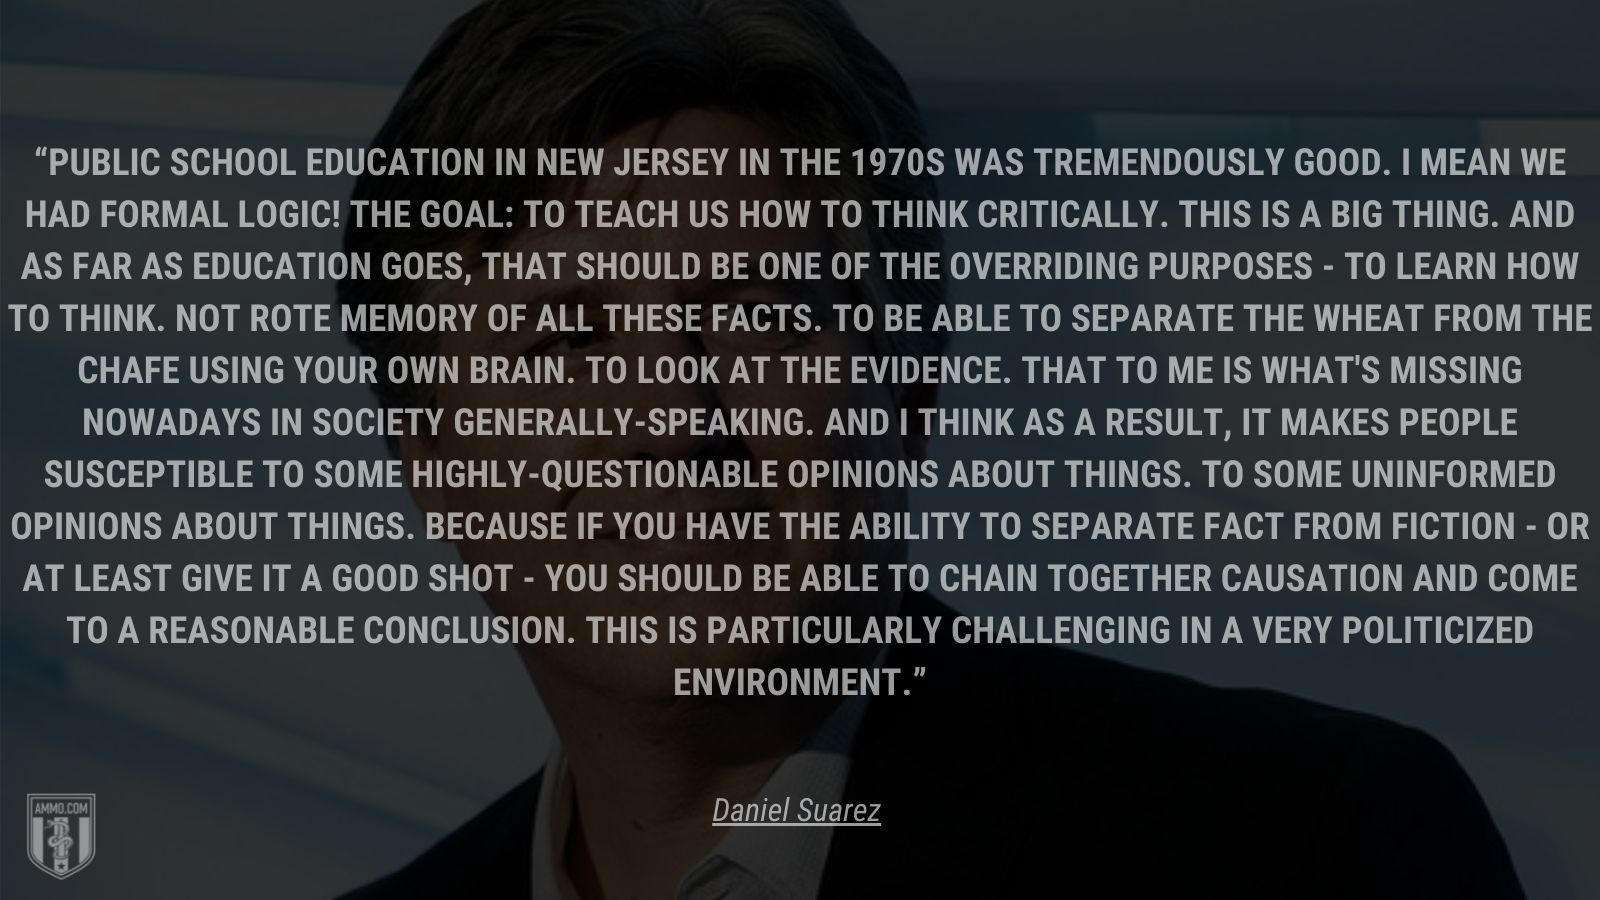 """""""Public school education in New Jersey in the 1970s was tremendously good.  I mean we had formal logic!  The goal: to teach us how to think critically.  This is a big thing.  And as far as education goes, that should be one of the overriding purposes - to learn how to think.  Not rote memory of all these facts.  To be able to separate the wheat from the chafe using your own brain. To look at the evidence.  That to me is what's missing nowadays in society generally-speaking.  And I think as a result, it makes people susceptible to some highly-questionable opinions about things.  To some uninformed opinions about things.  Because if you have the ability to separate fact from fiction - or at least give it a good shot - you should be able to chain together causation and come to a reasonable conclusion.  This is particularly challenging in a very politicized environment."""" - Daniel Suarez"""